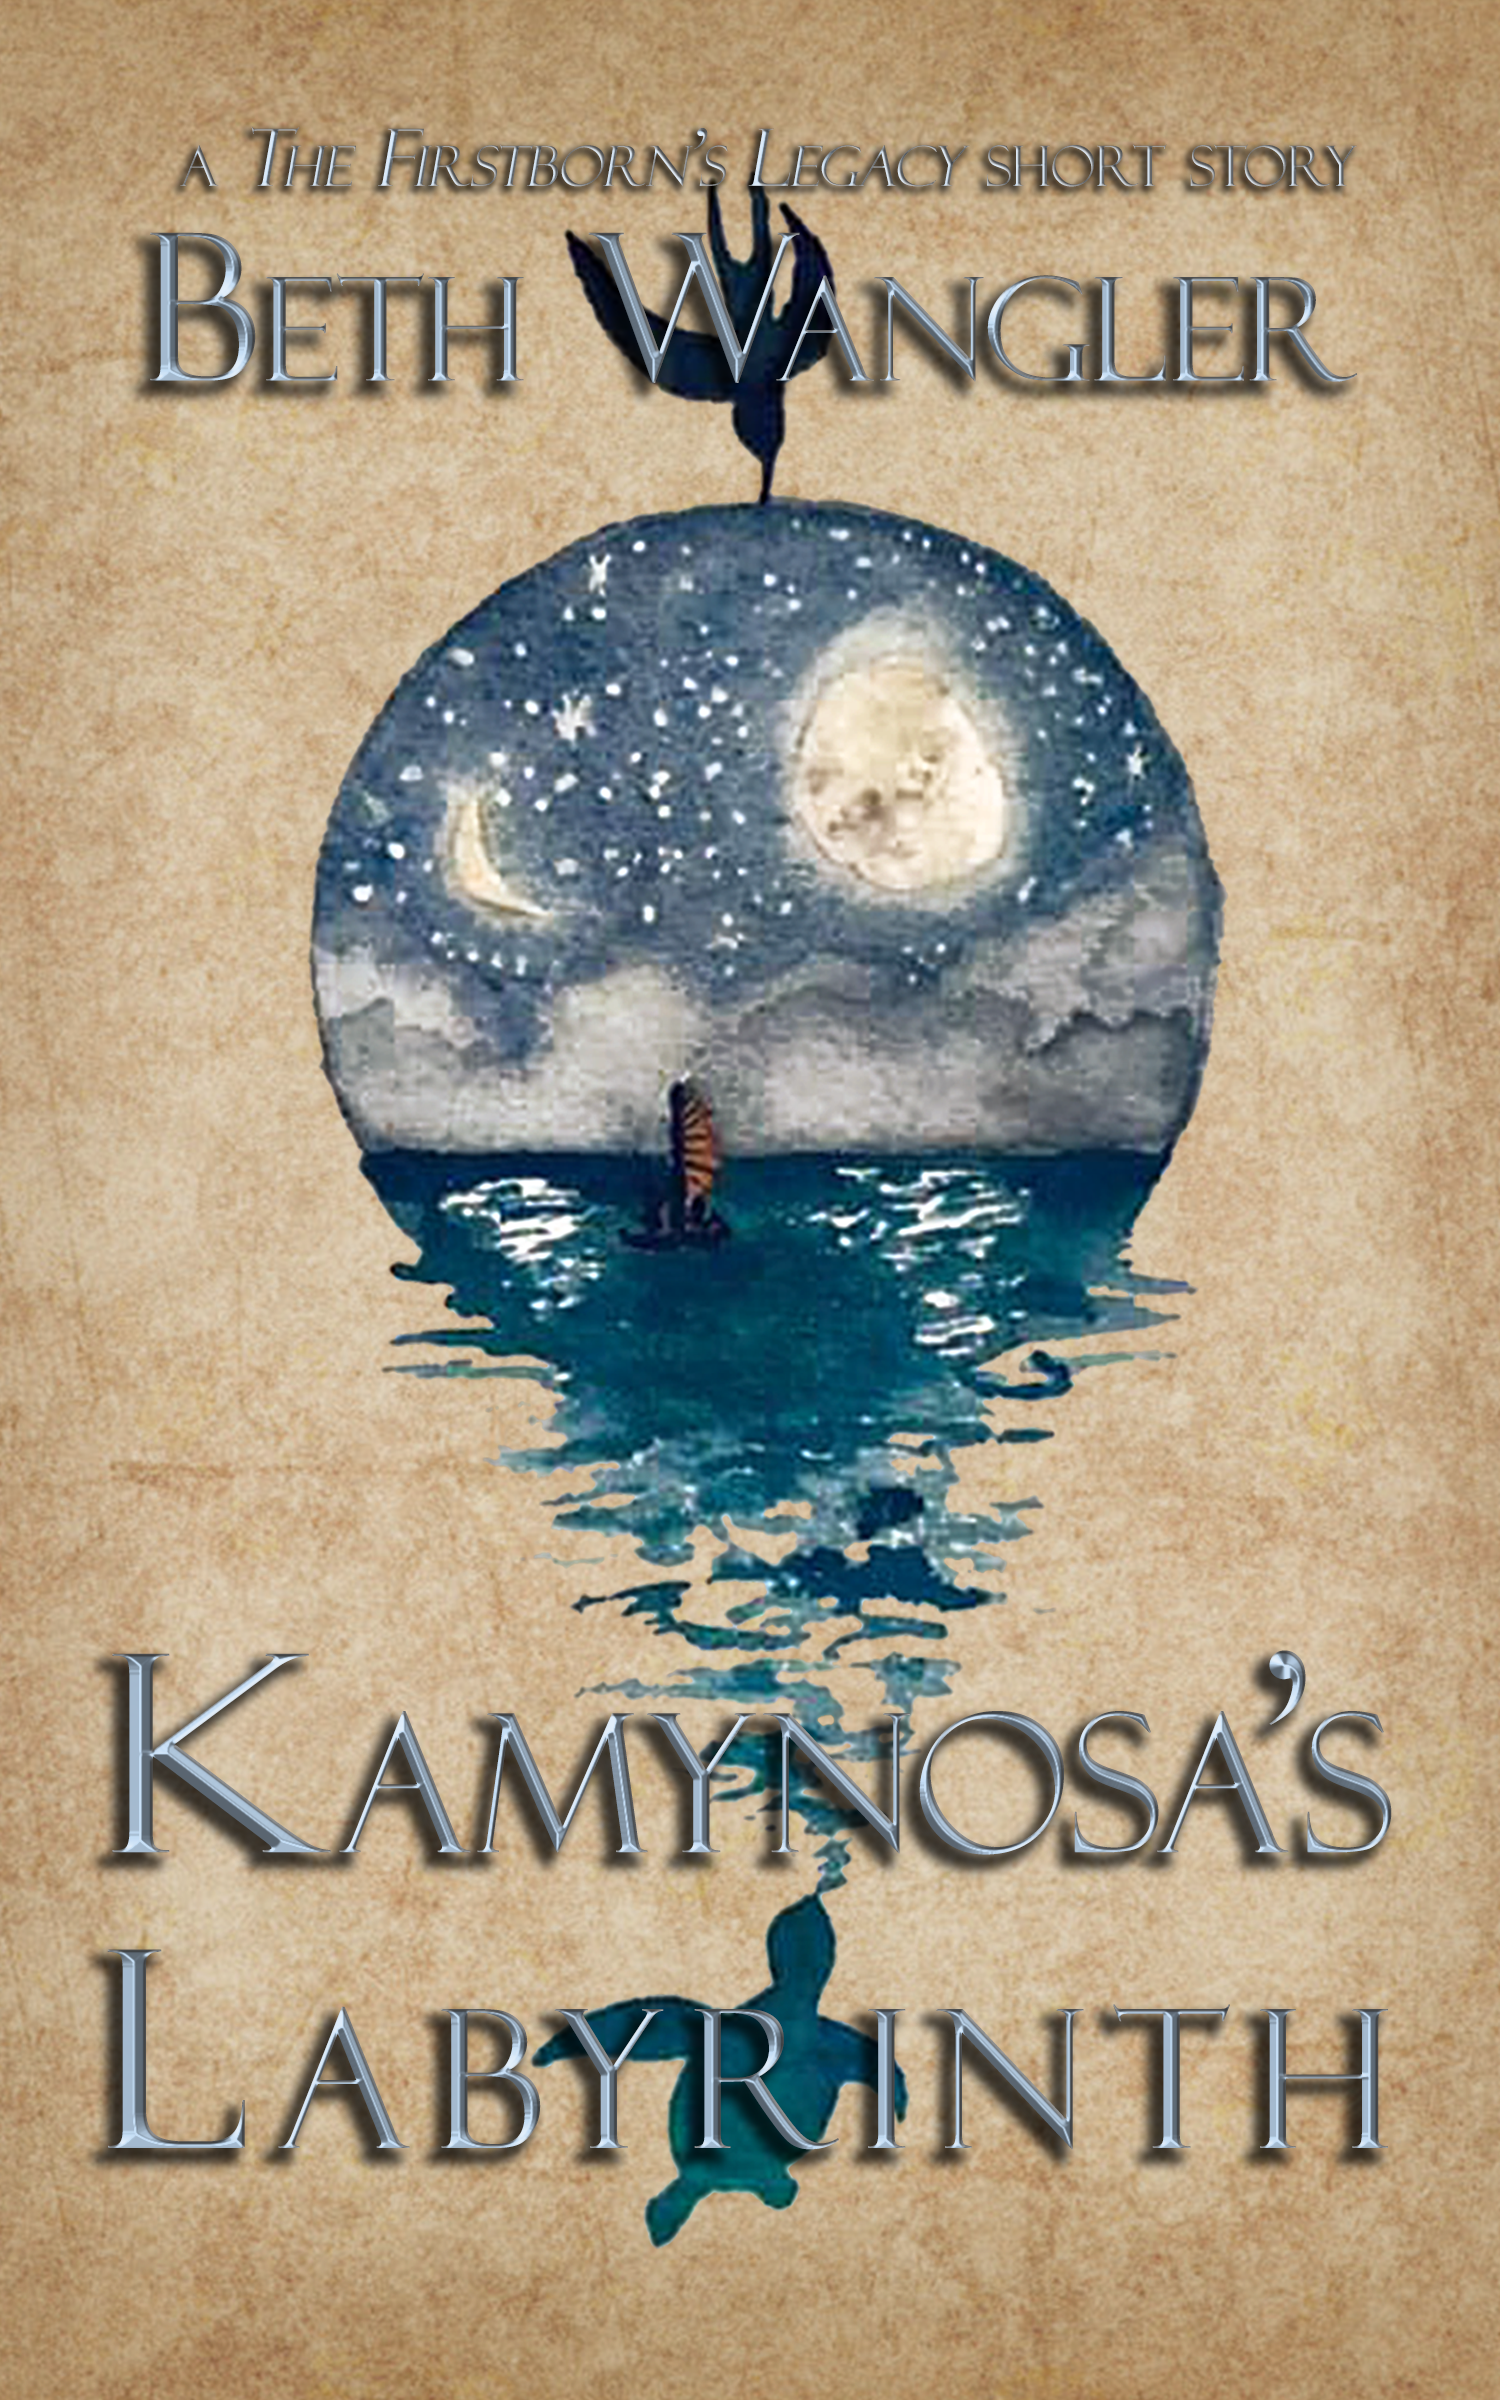 kamynosas-labyrinth-watercolor-cover-2.png